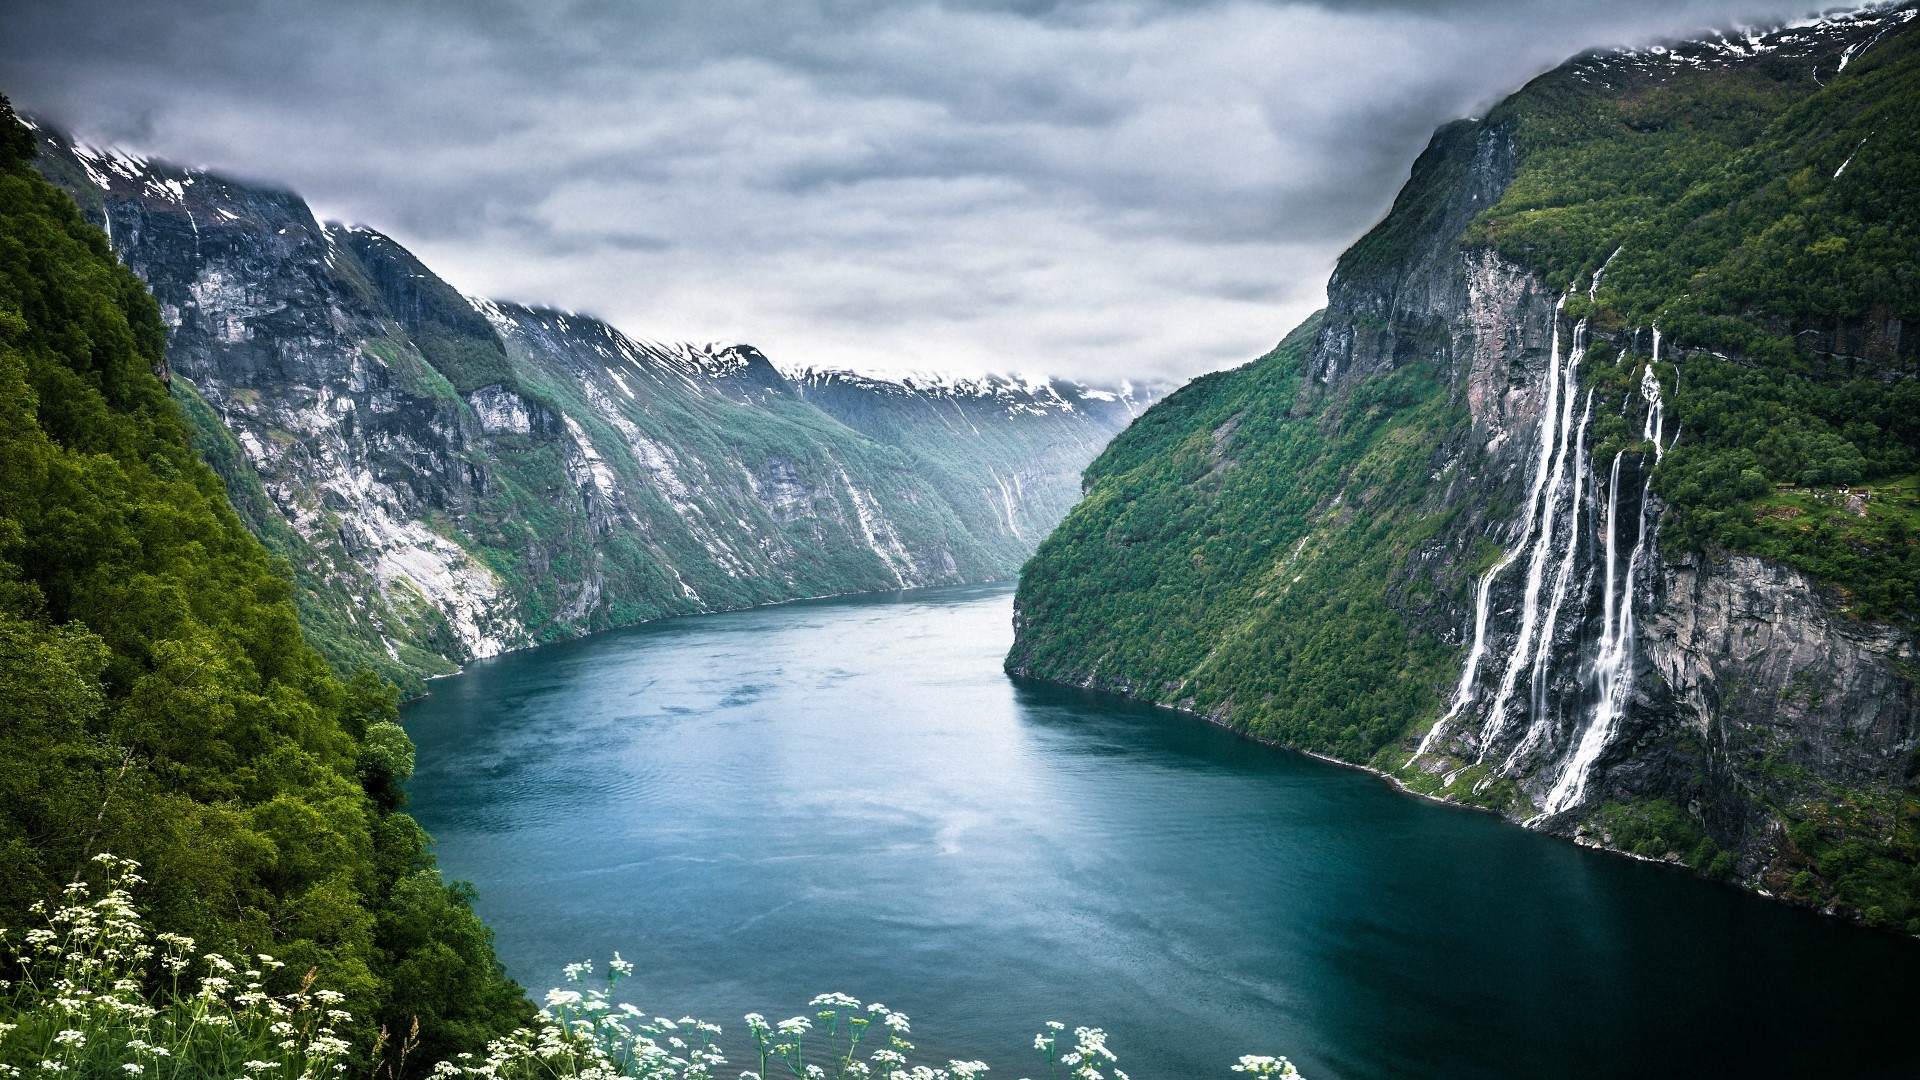 1920x1080 Best wallpaper gallery with the beautiful view of mountains in Norway fjord  wallpapers and HD wallpapers. We collected full High Quality pictures and  ...